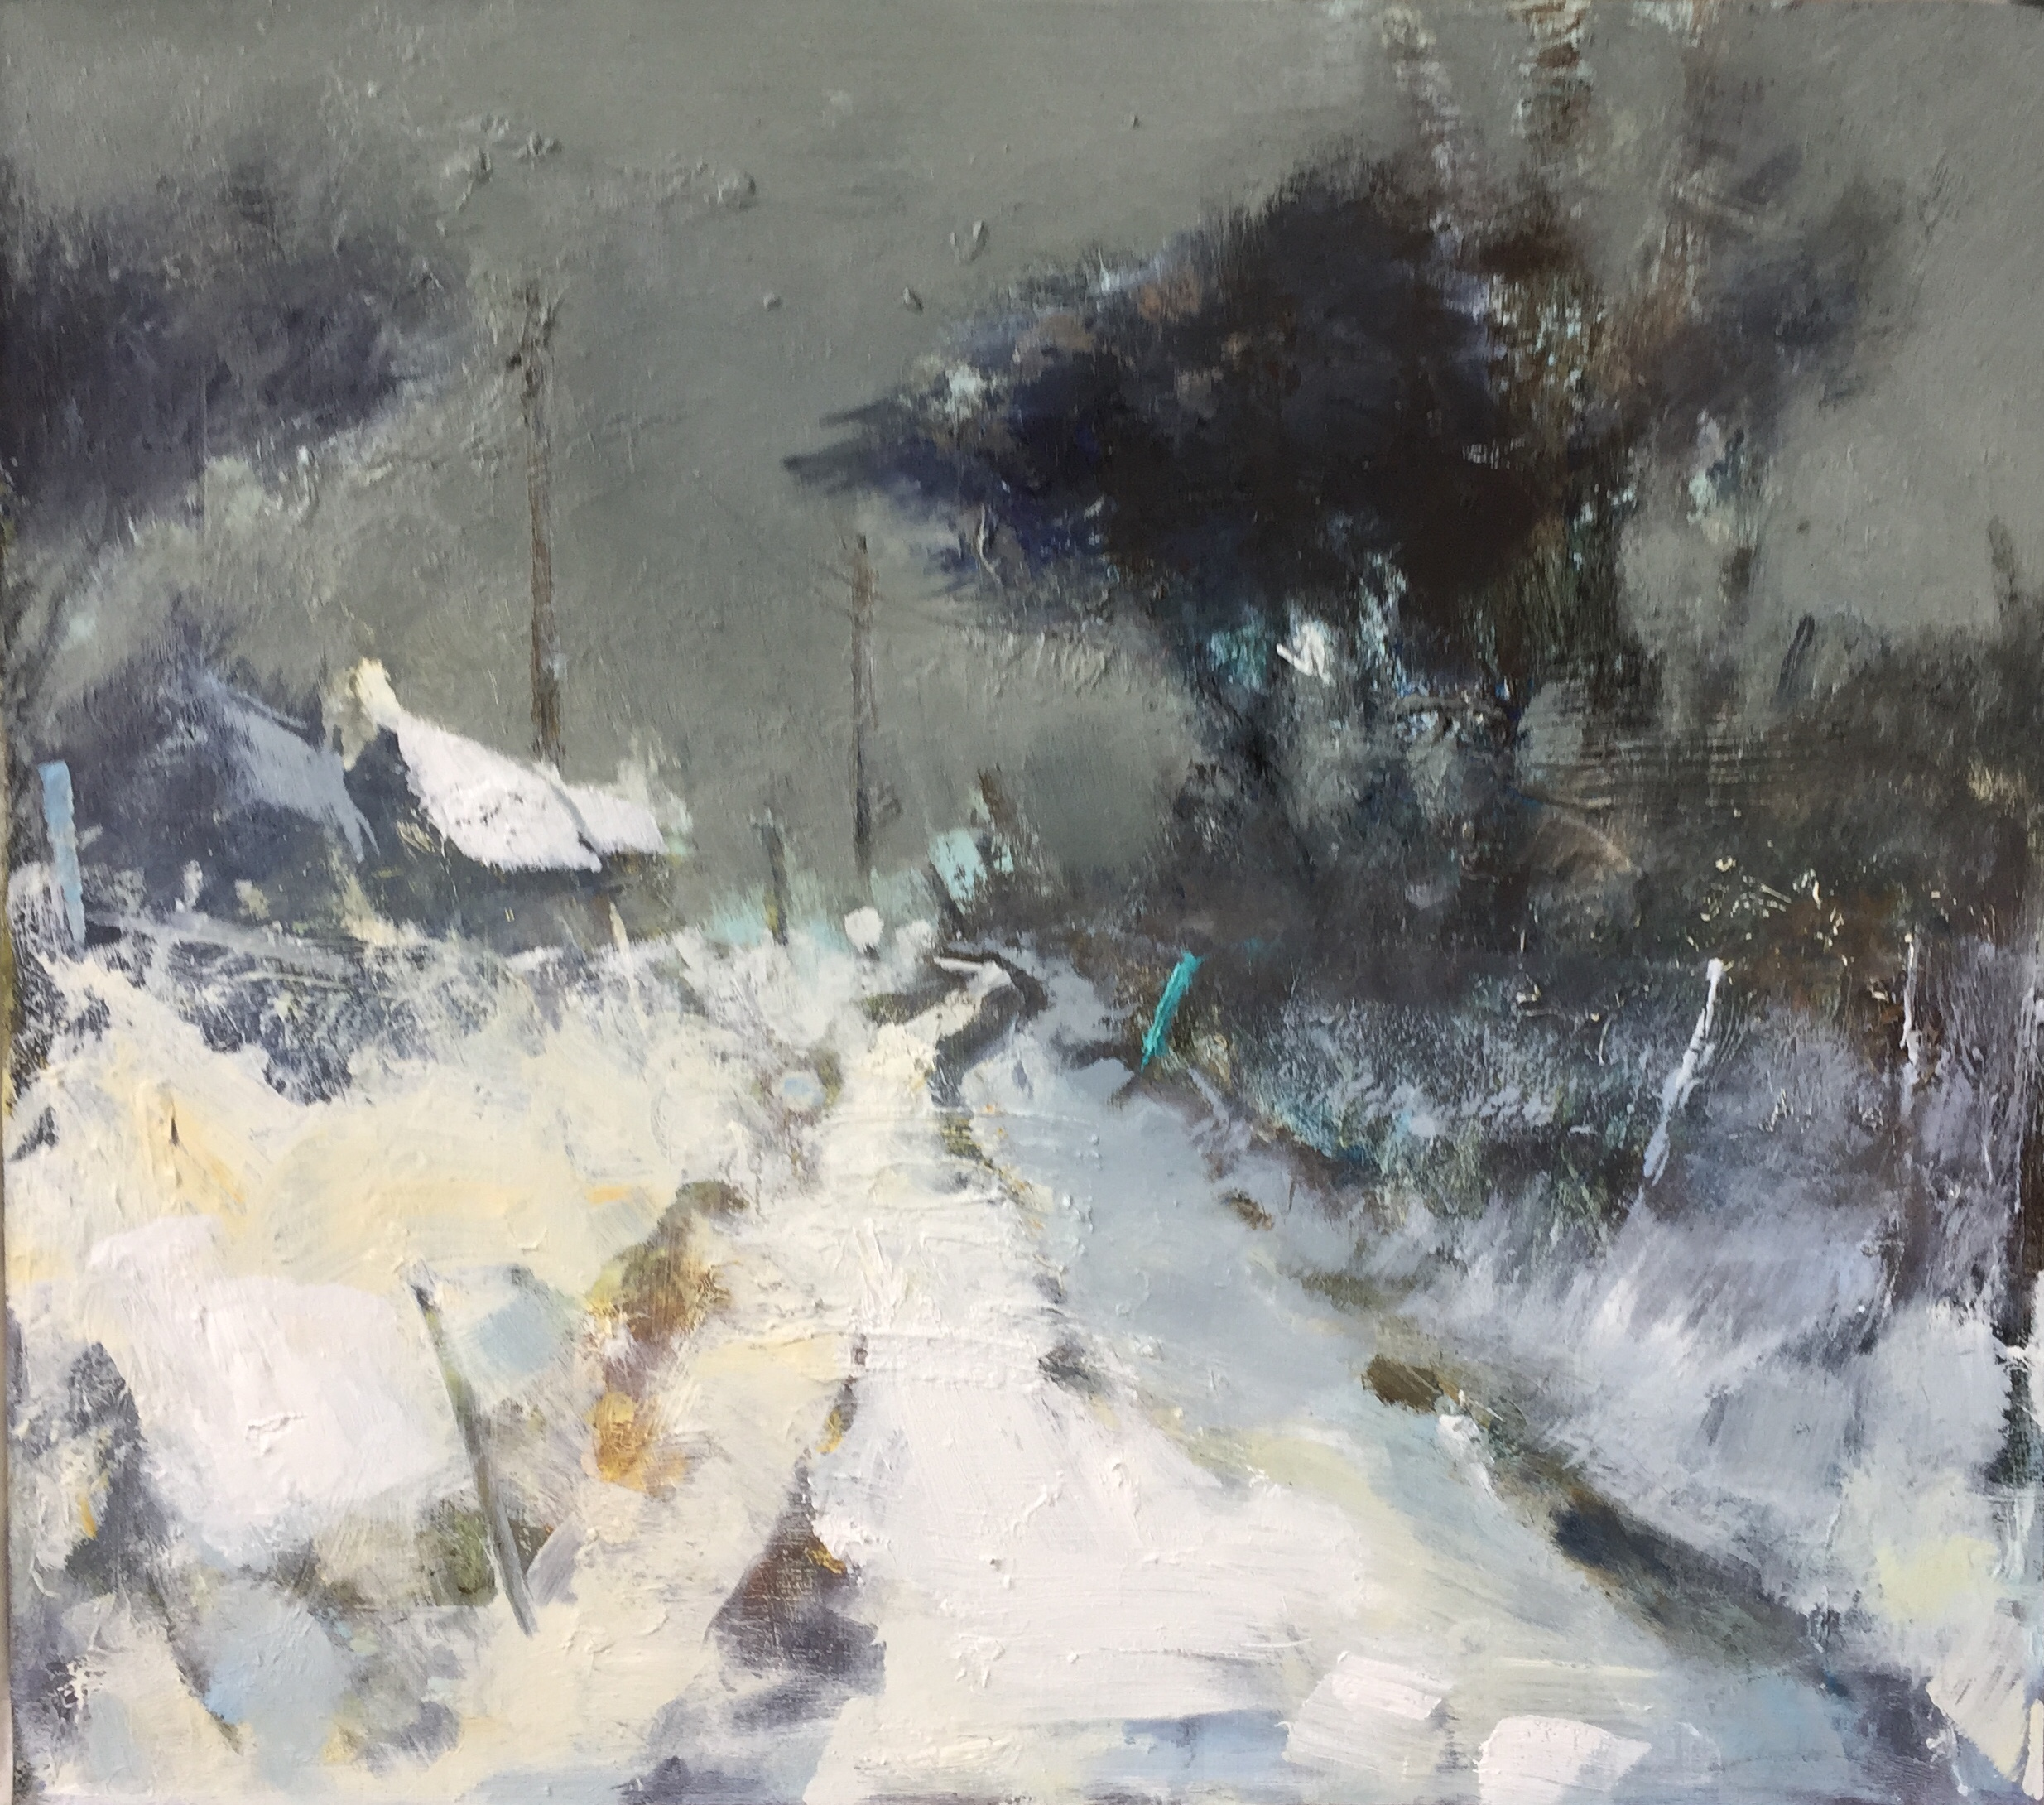 Evening Snowfall.  Oil on board. 35 x 40cm  Sold